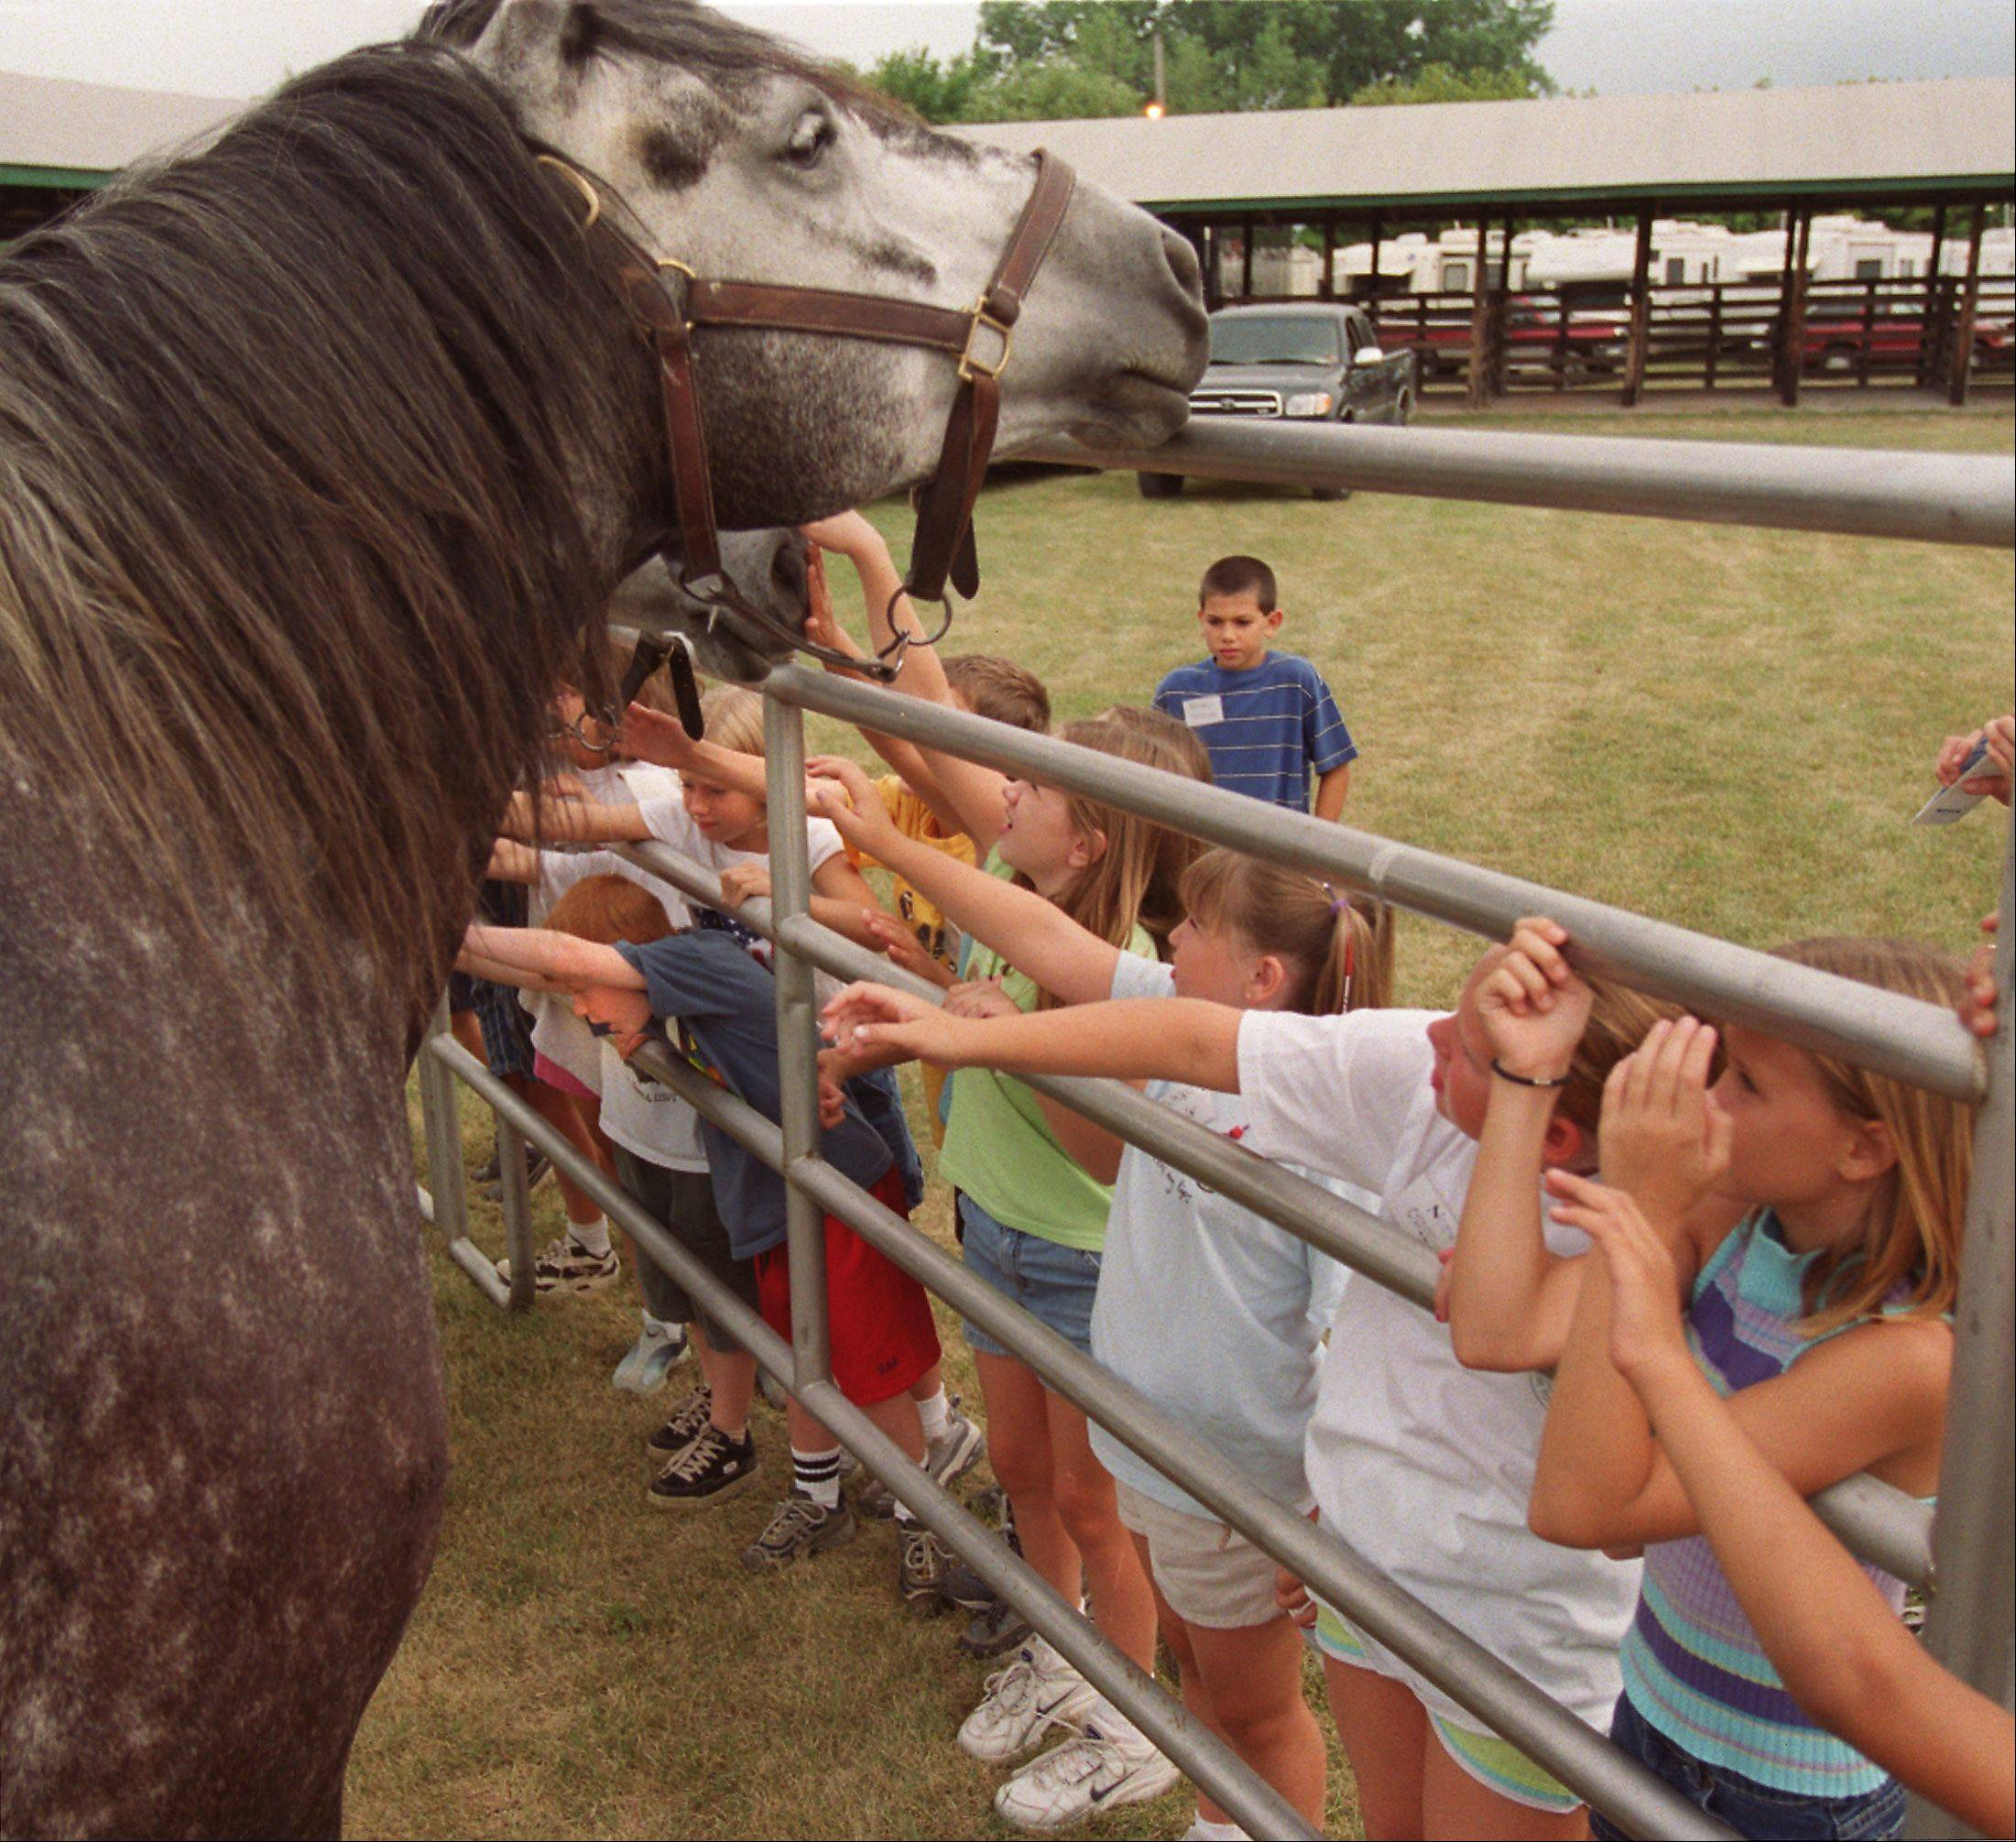 Rosie, a Percheron mare, says 'hello' to a group of children at the DuPage County Fair in Wheaton.